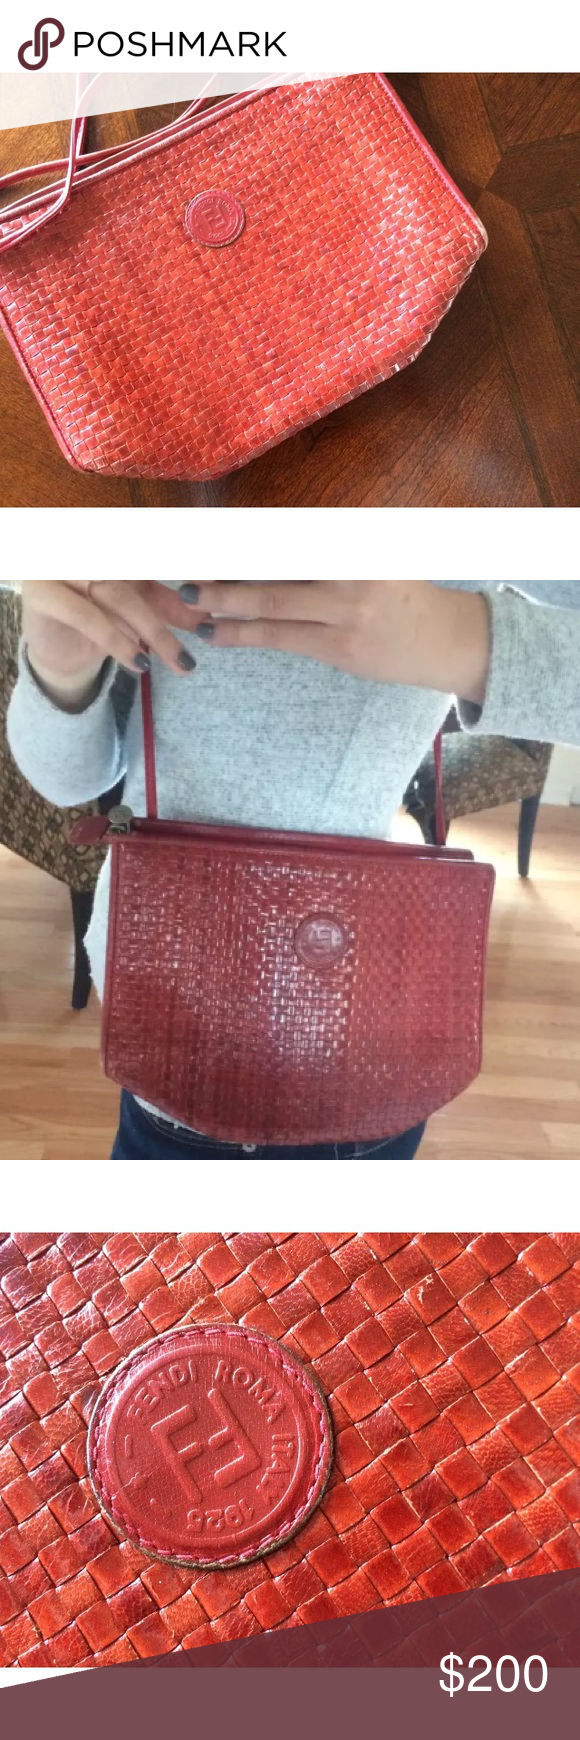 Rare Sold out Vintage Red Fendi Crossbody Purse Vintage Fendi Crossbody  with beautiful woven leather. This is a burnt red color and has some signs  of wear ... cafe14b0c4eba